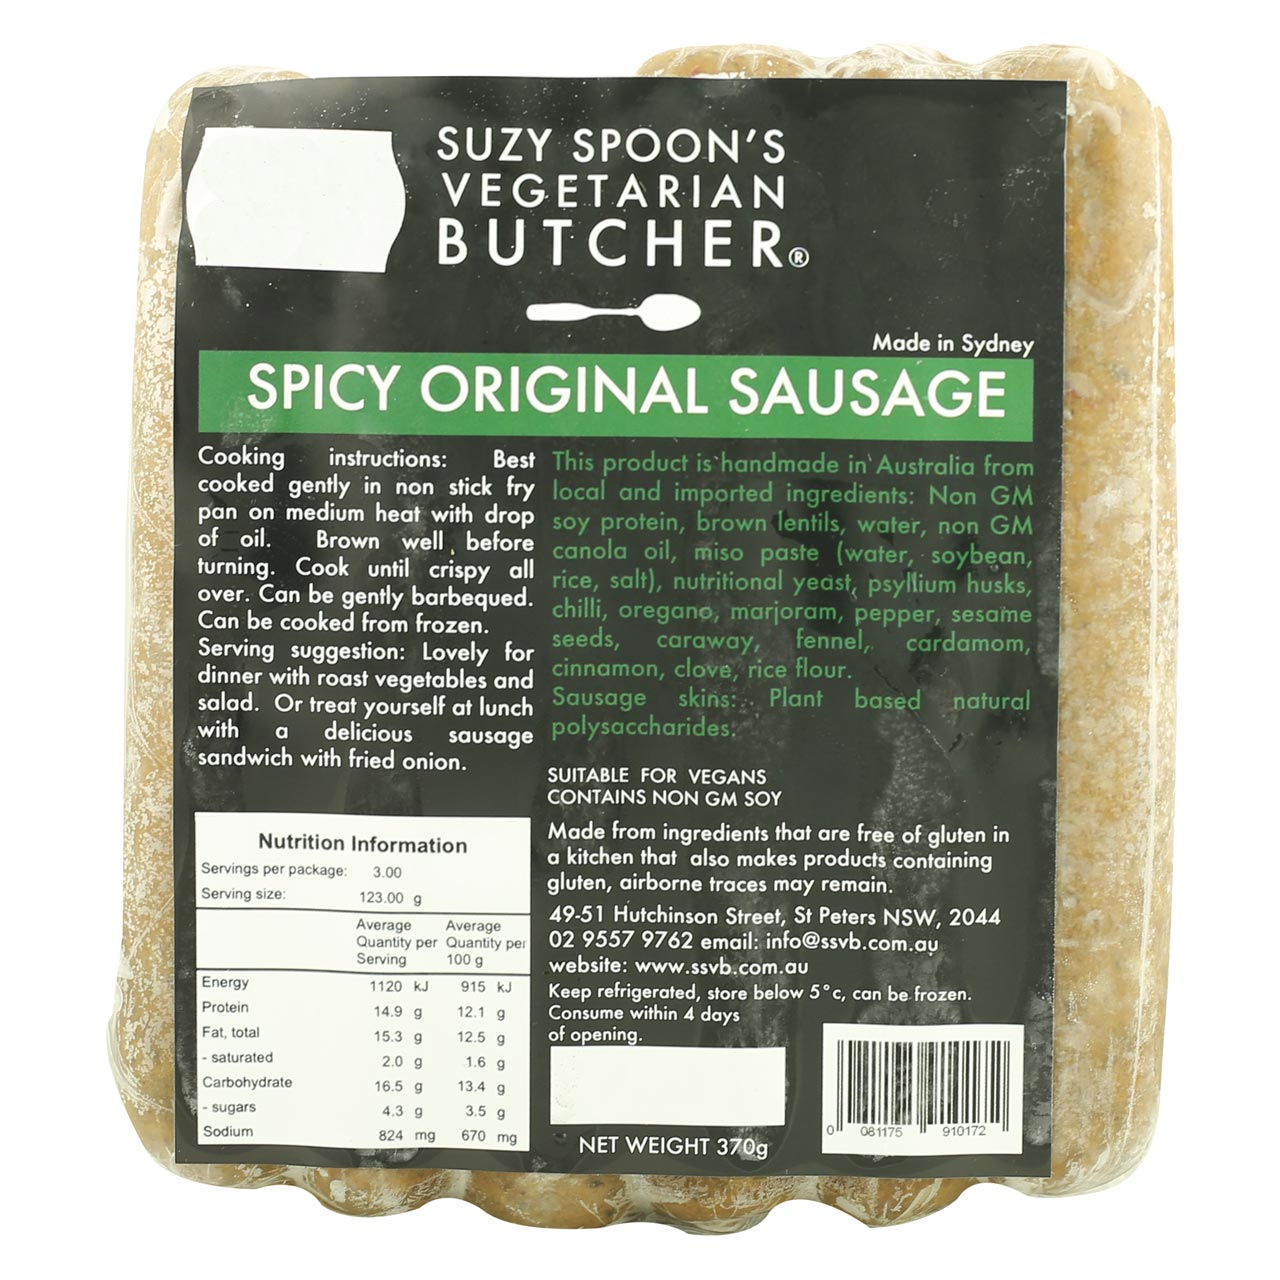 Suzy Spoon's Spicy Original Sausage (Best Before: 1st August 2018)